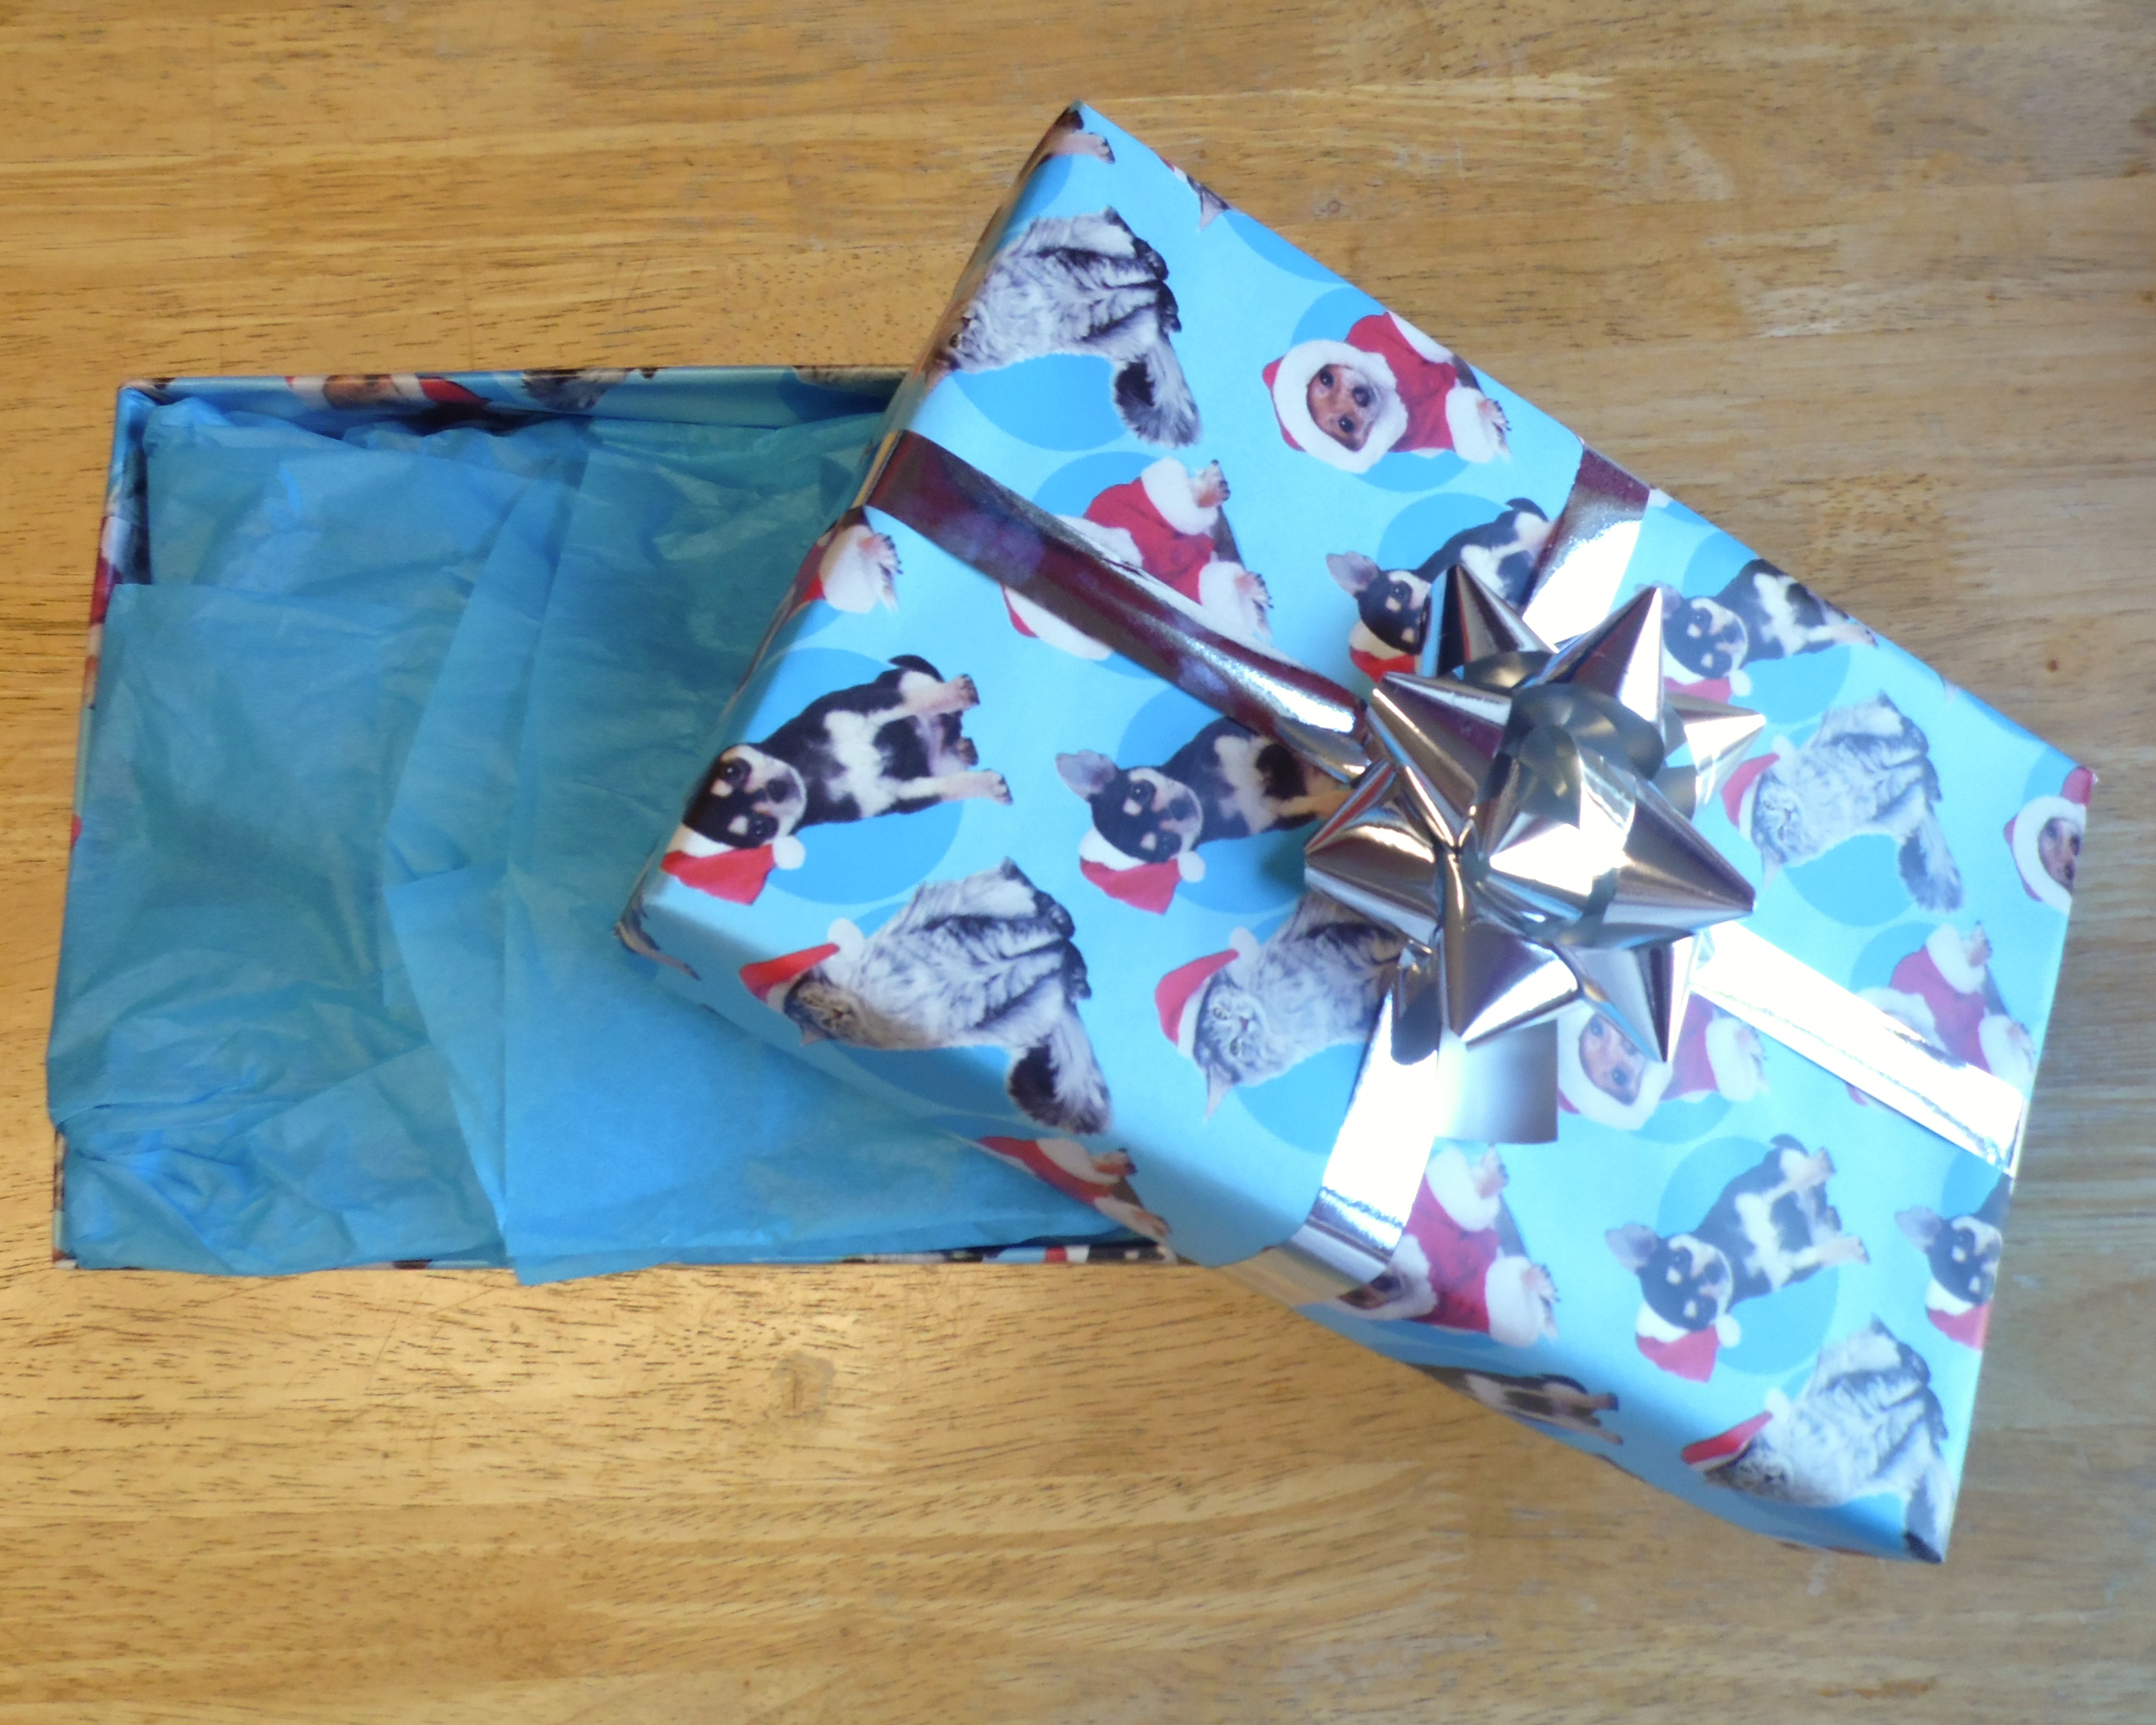 Picture of Package and Present Your Gift!